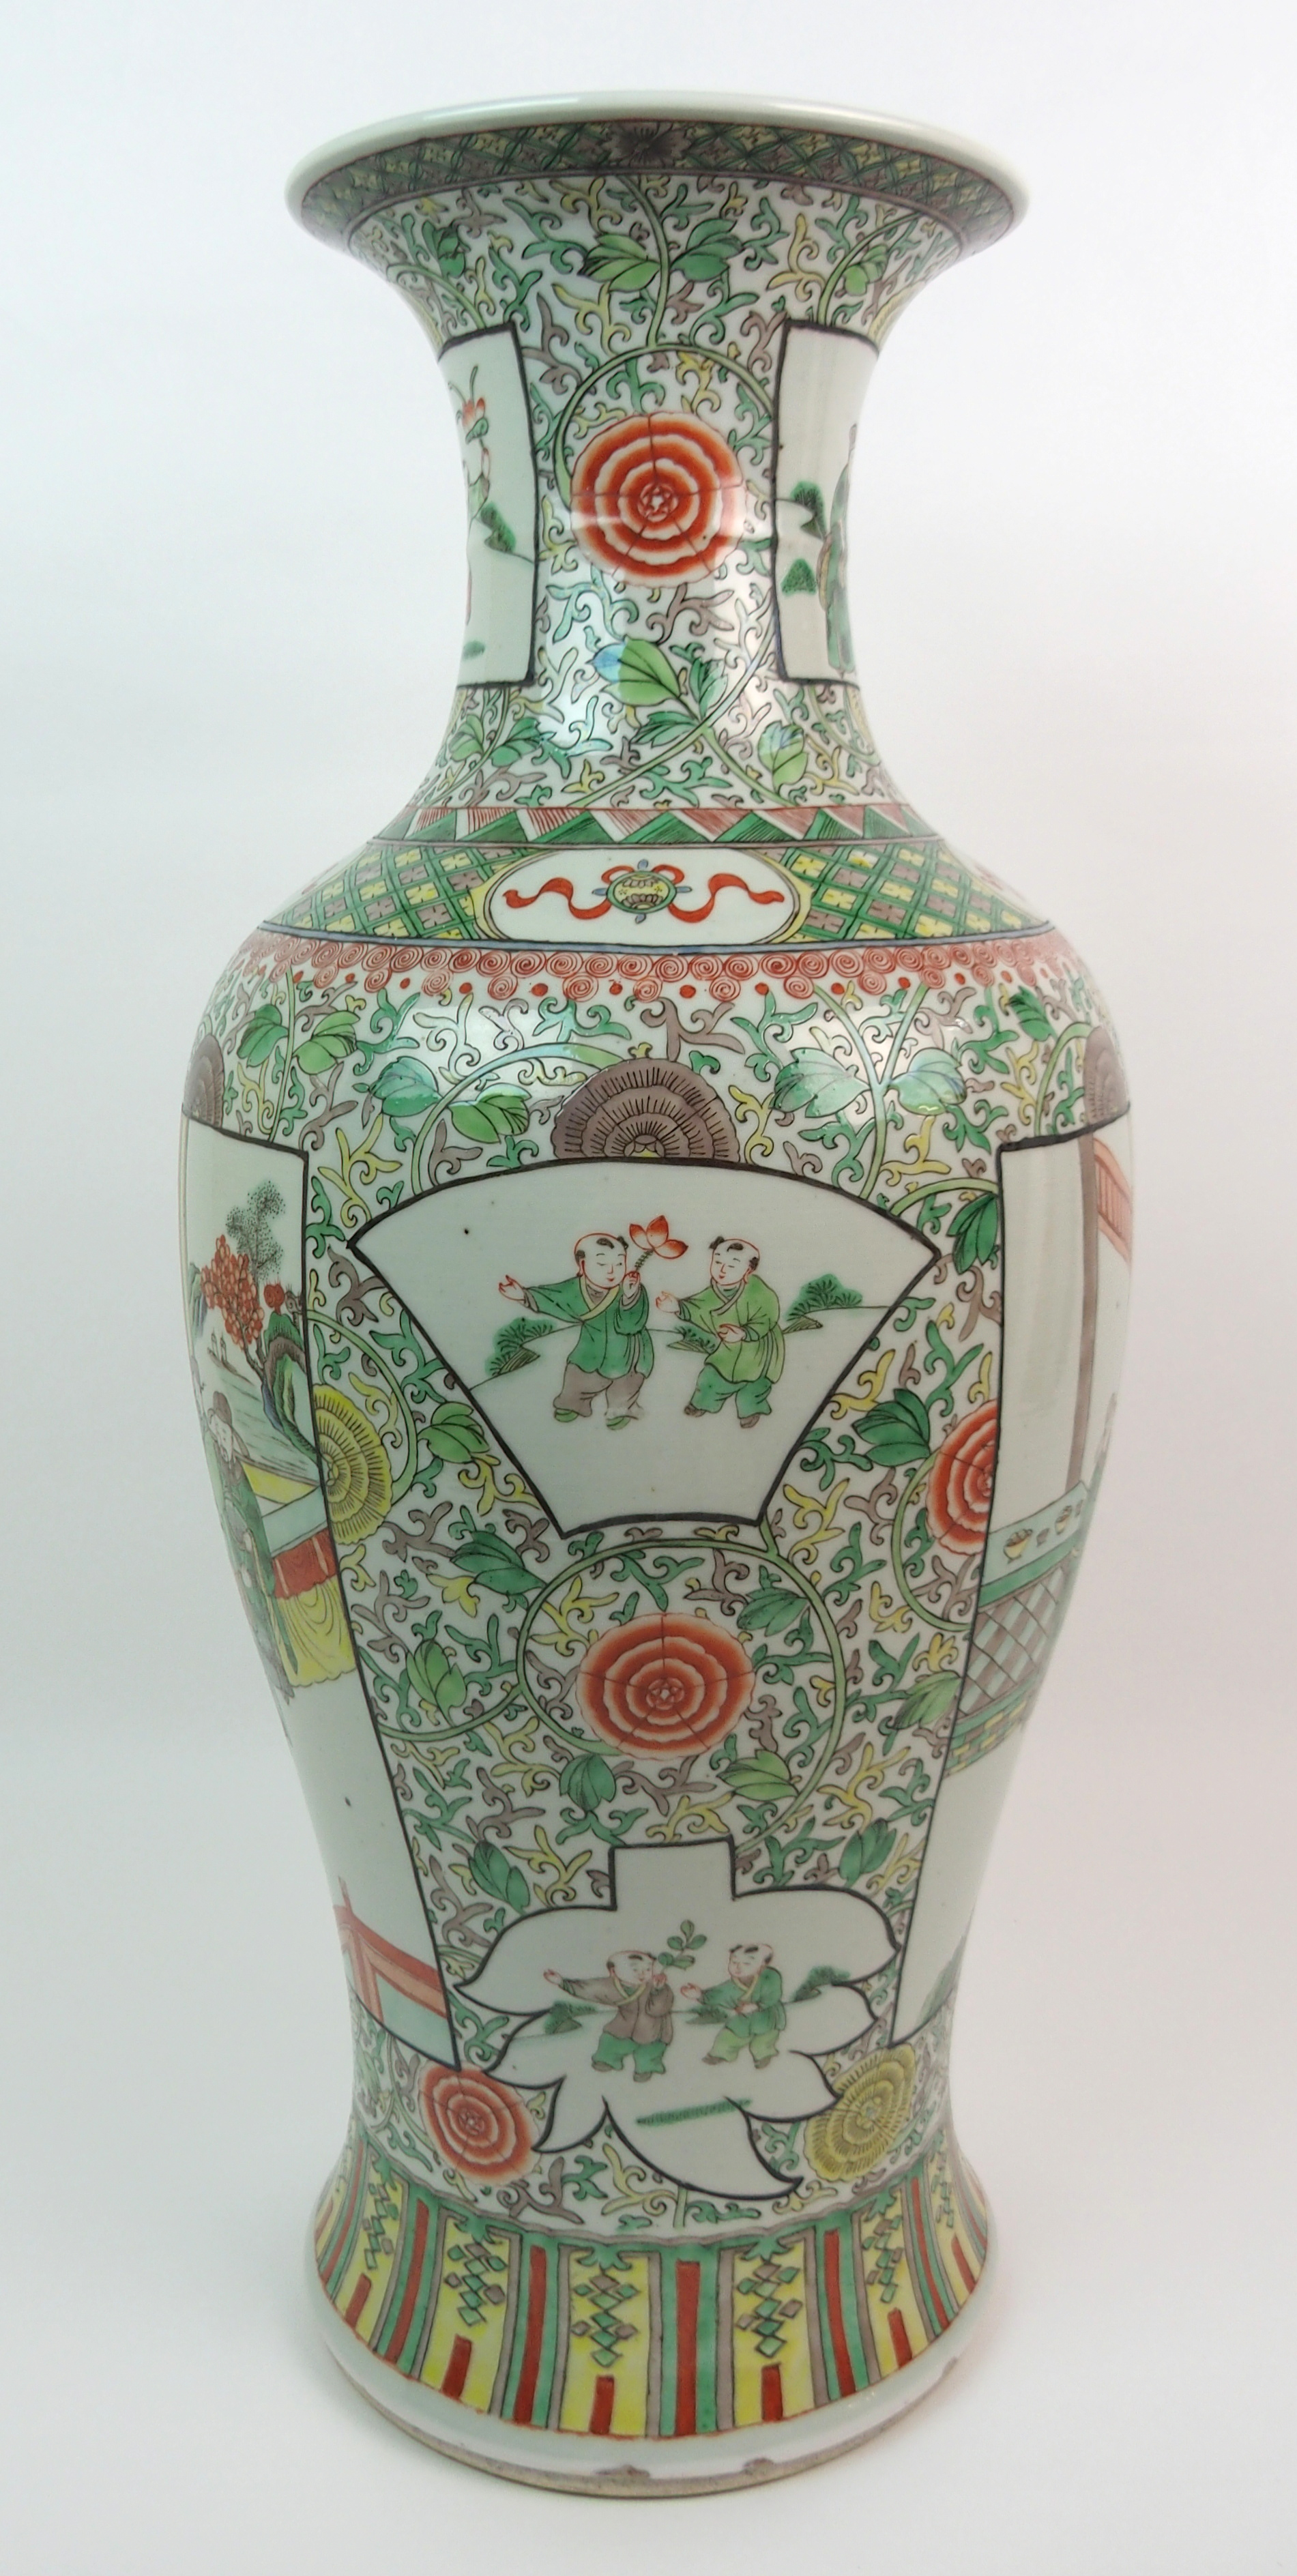 A CHINESE FAMILLE VERTE LARGE BALUSTER VASE painted with panels of figures surrounded by flowers and - Image 6 of 10